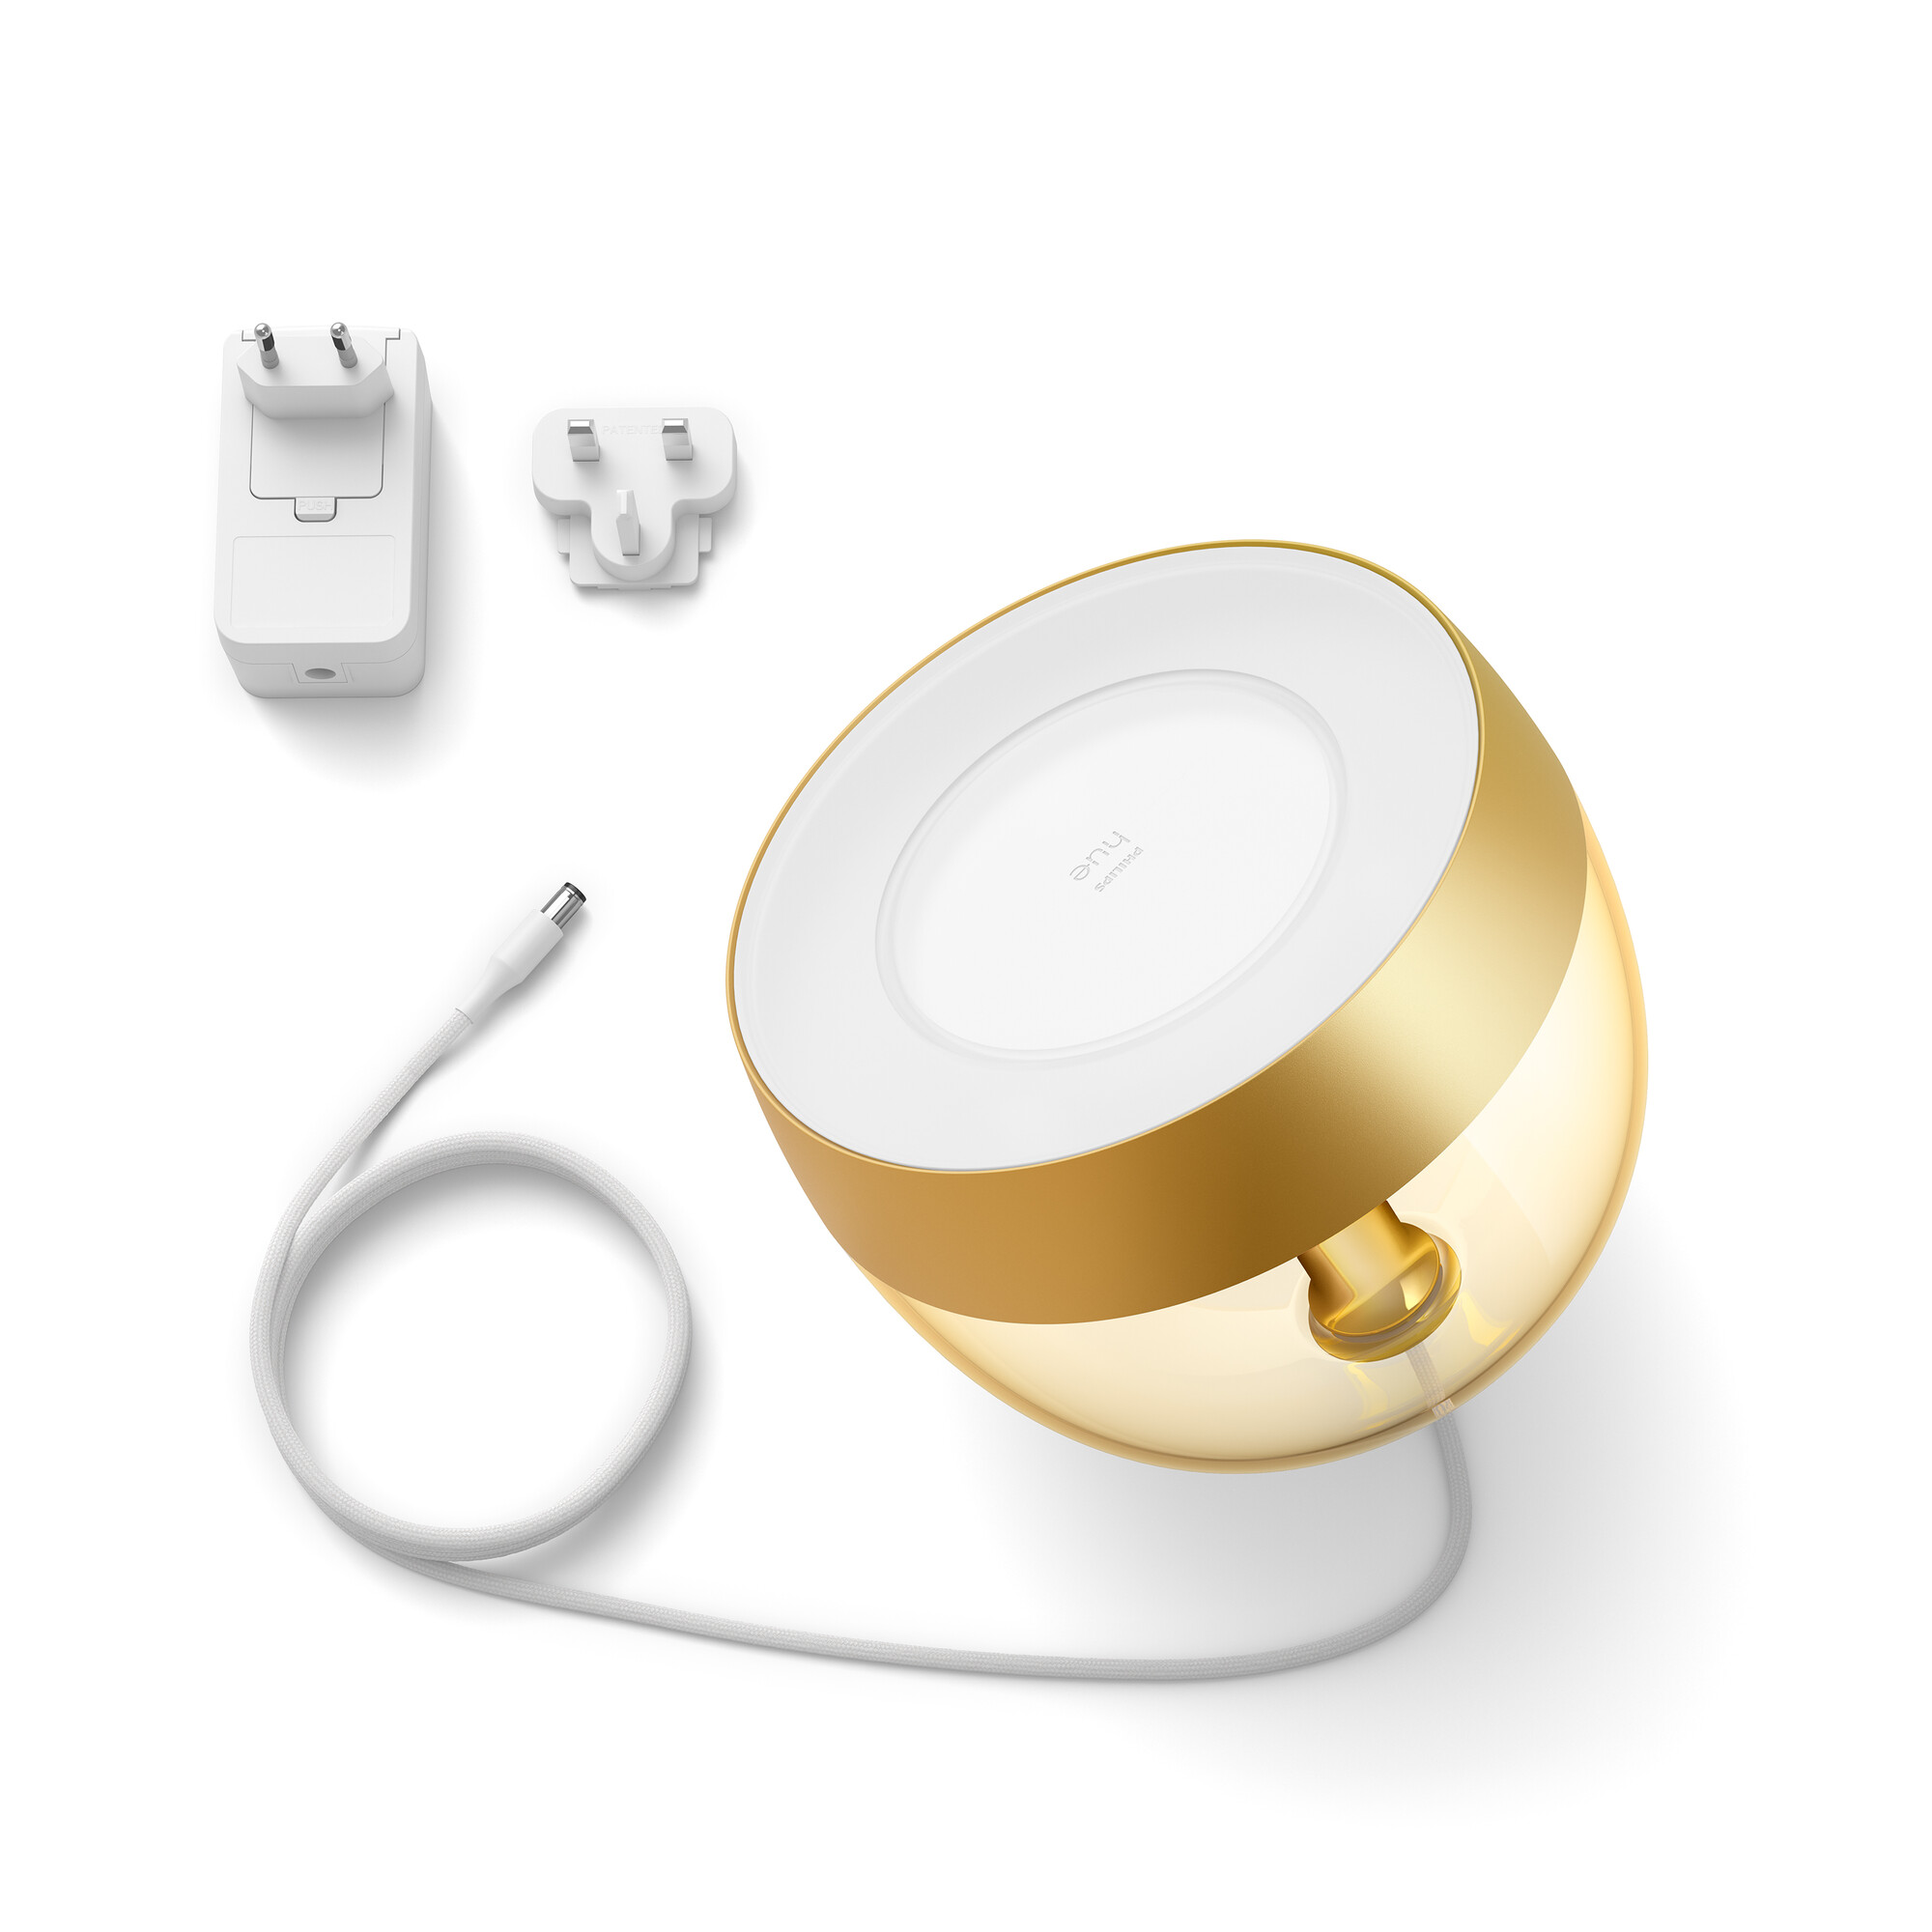 Philips HUE IRIS Lampe de table LED 1x8,1W/570lm Or